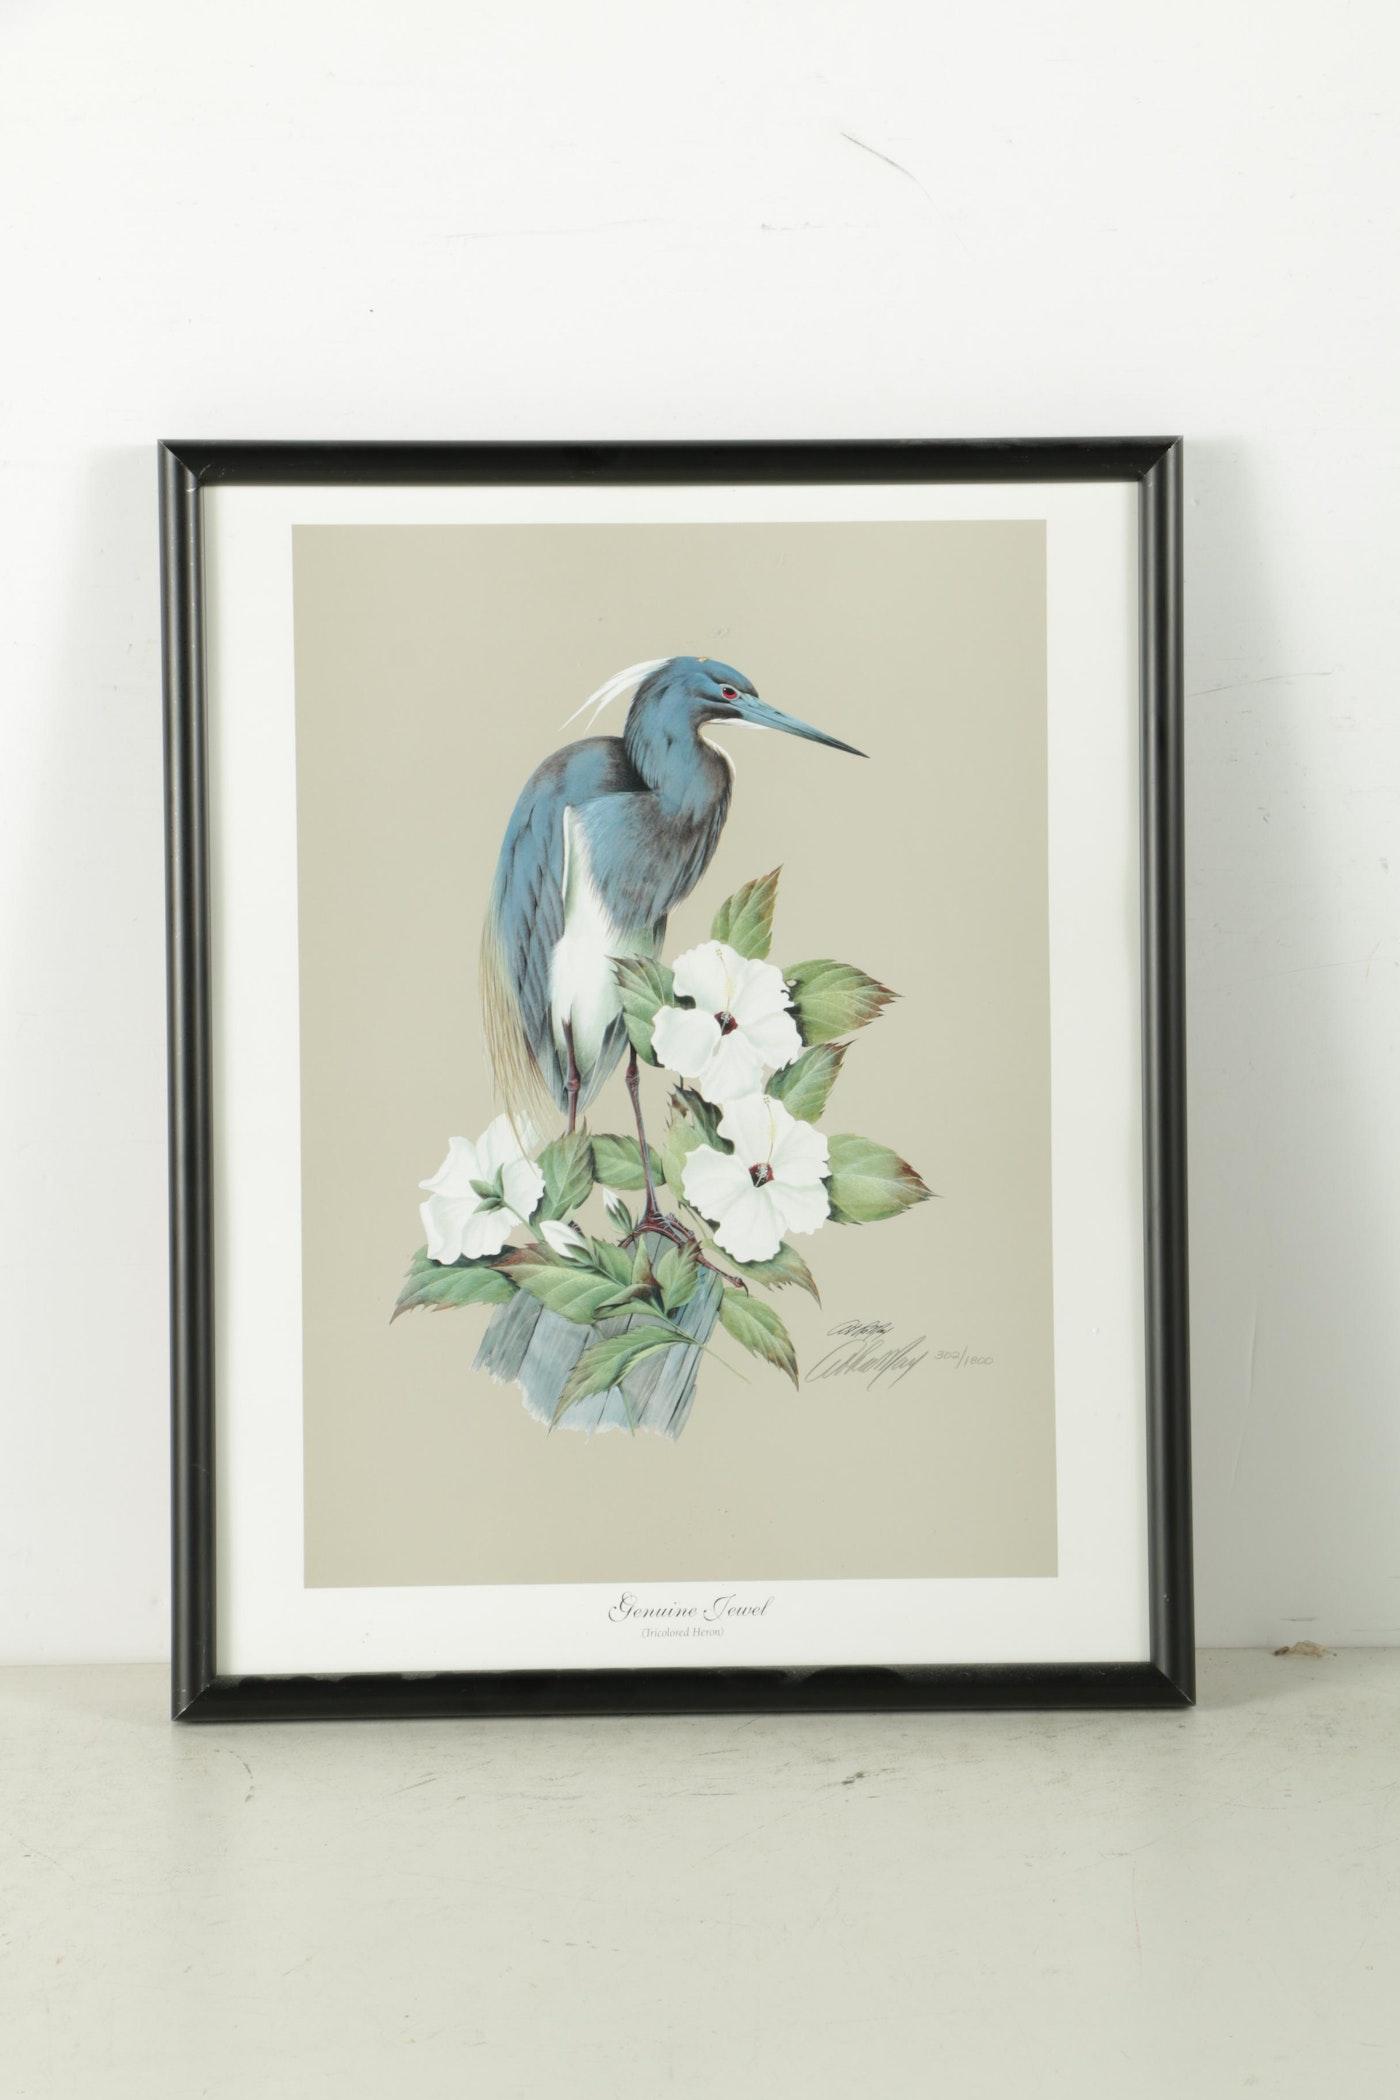 Jewel Auto Sales >> Art LaMay Limited Edition Reproduction Prints of Herons | EBTH